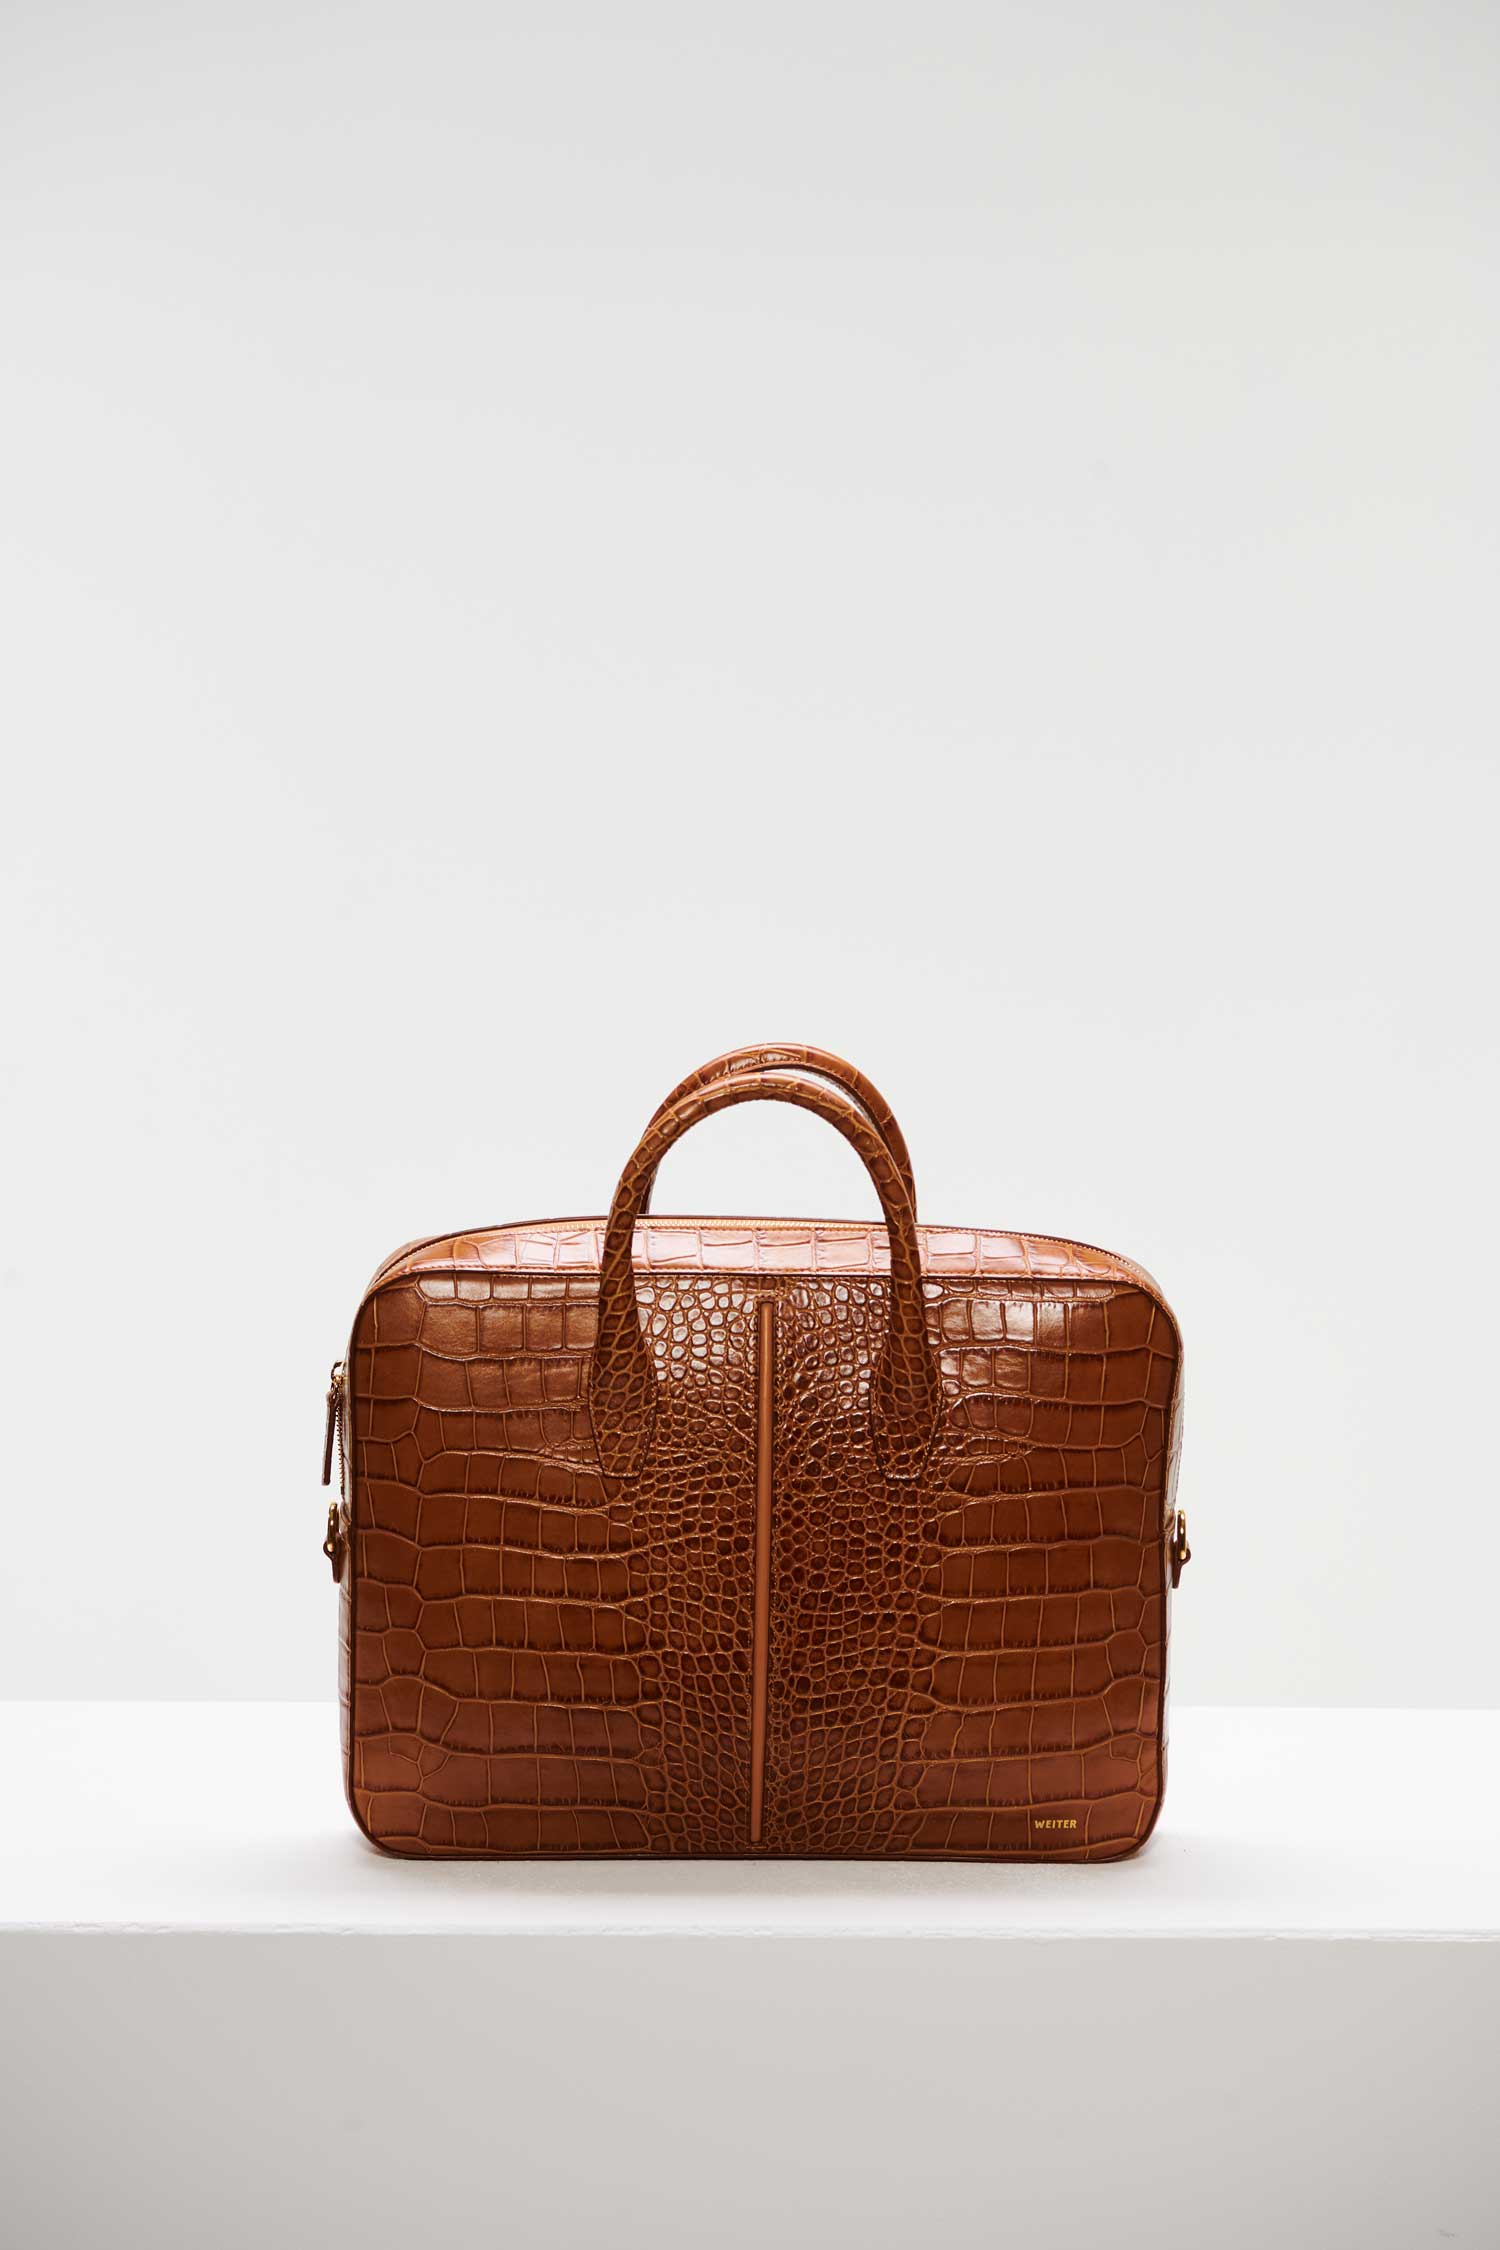 Weiter Bags – SHARP - Honey Croc – 2020